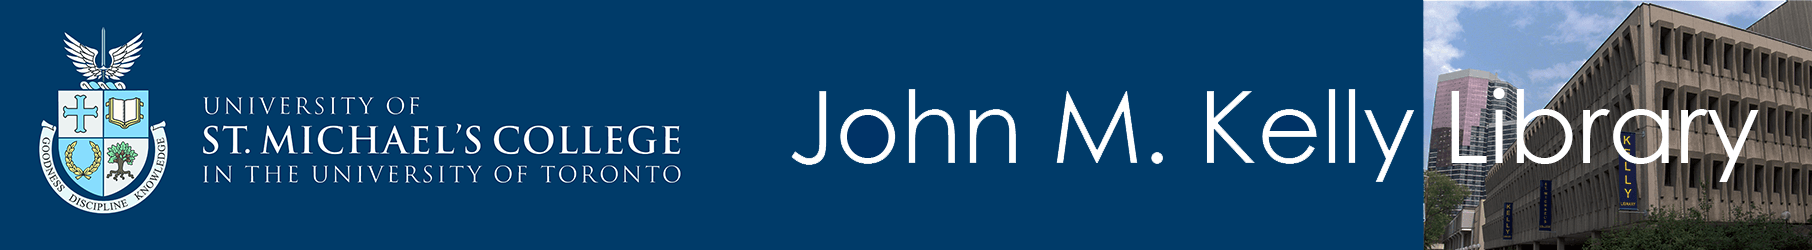 John M. Kelly Library Research Guides